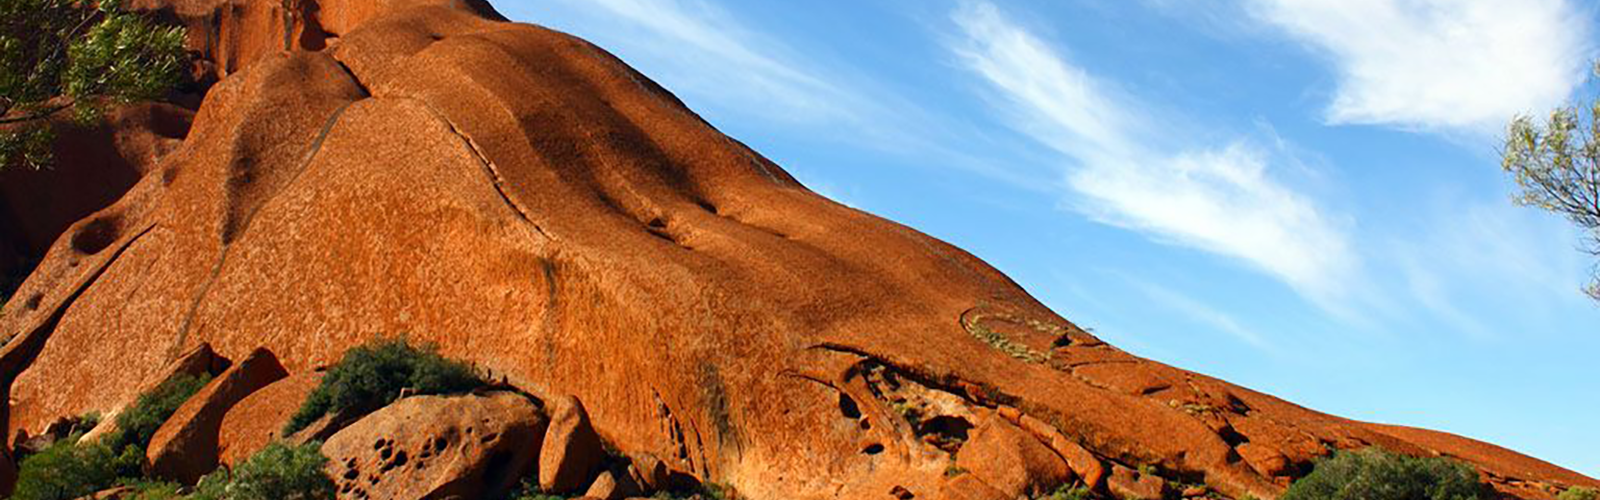 The climbing path, used by about 20 per cent of people who visit Uluru, seen here along the top edge. Photo: Chris McGaw: Flickr